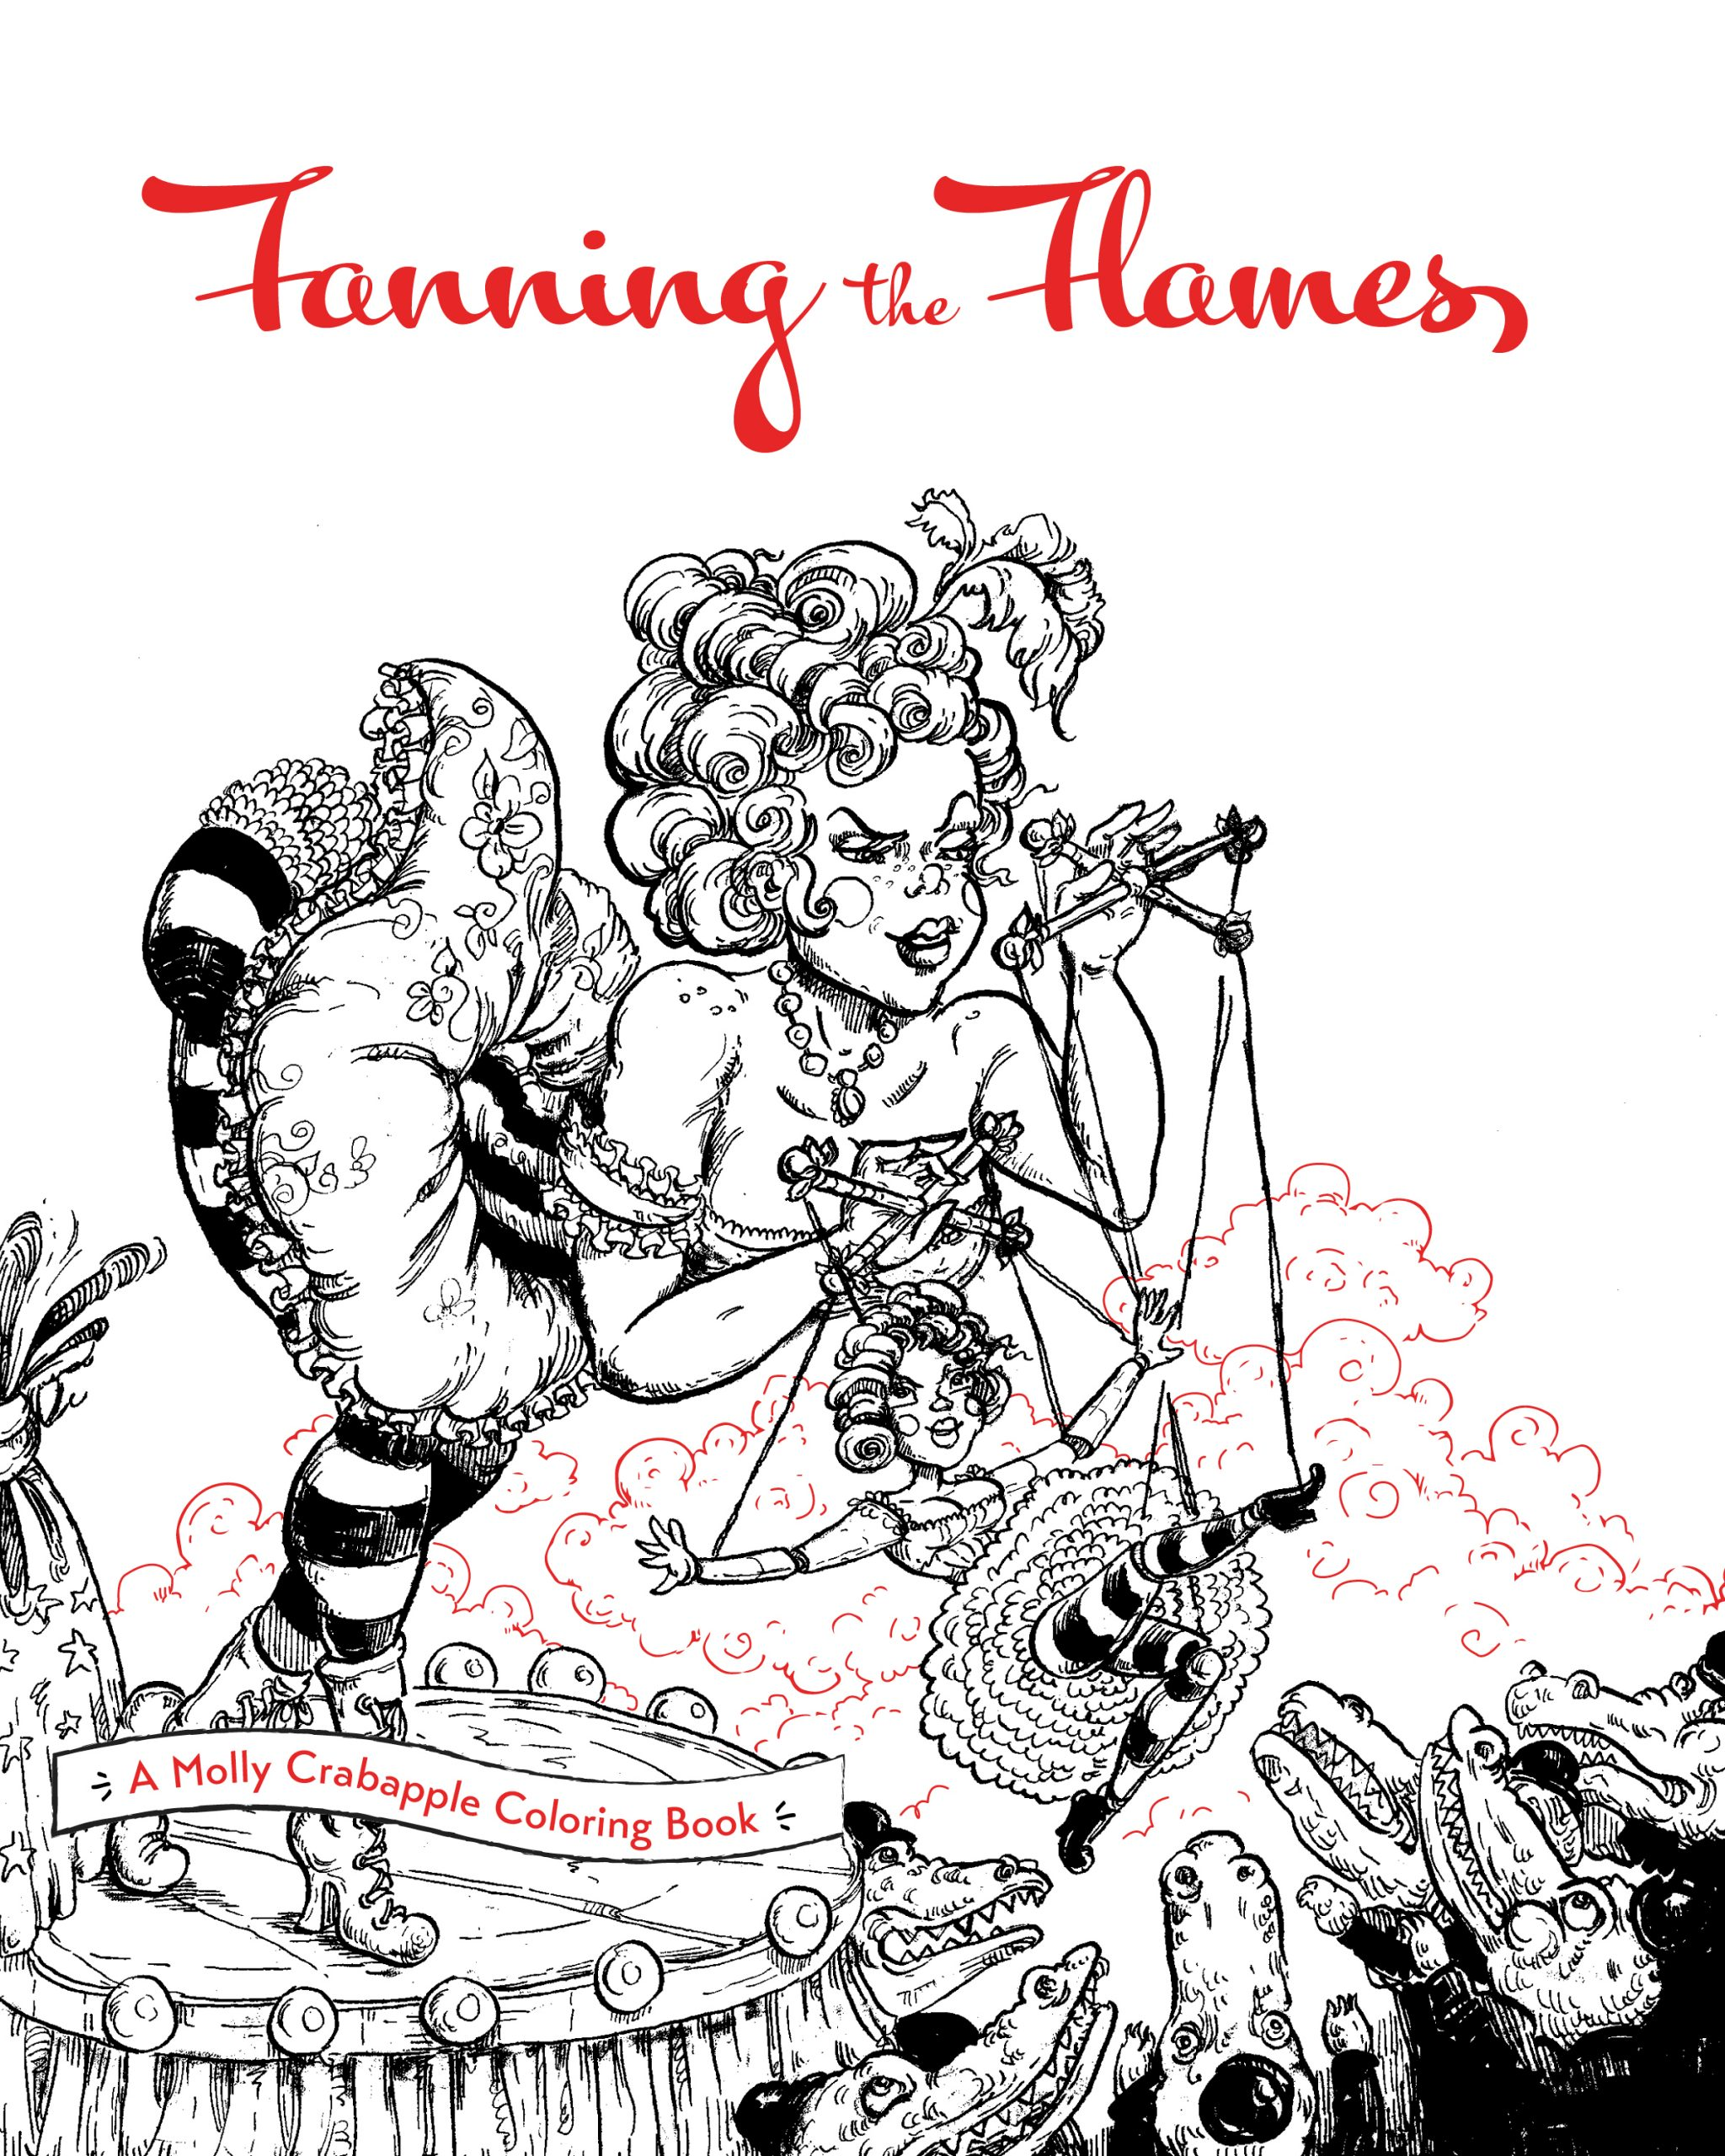 Fanning the Flames: A Molly Crabapple Coloring Book cover